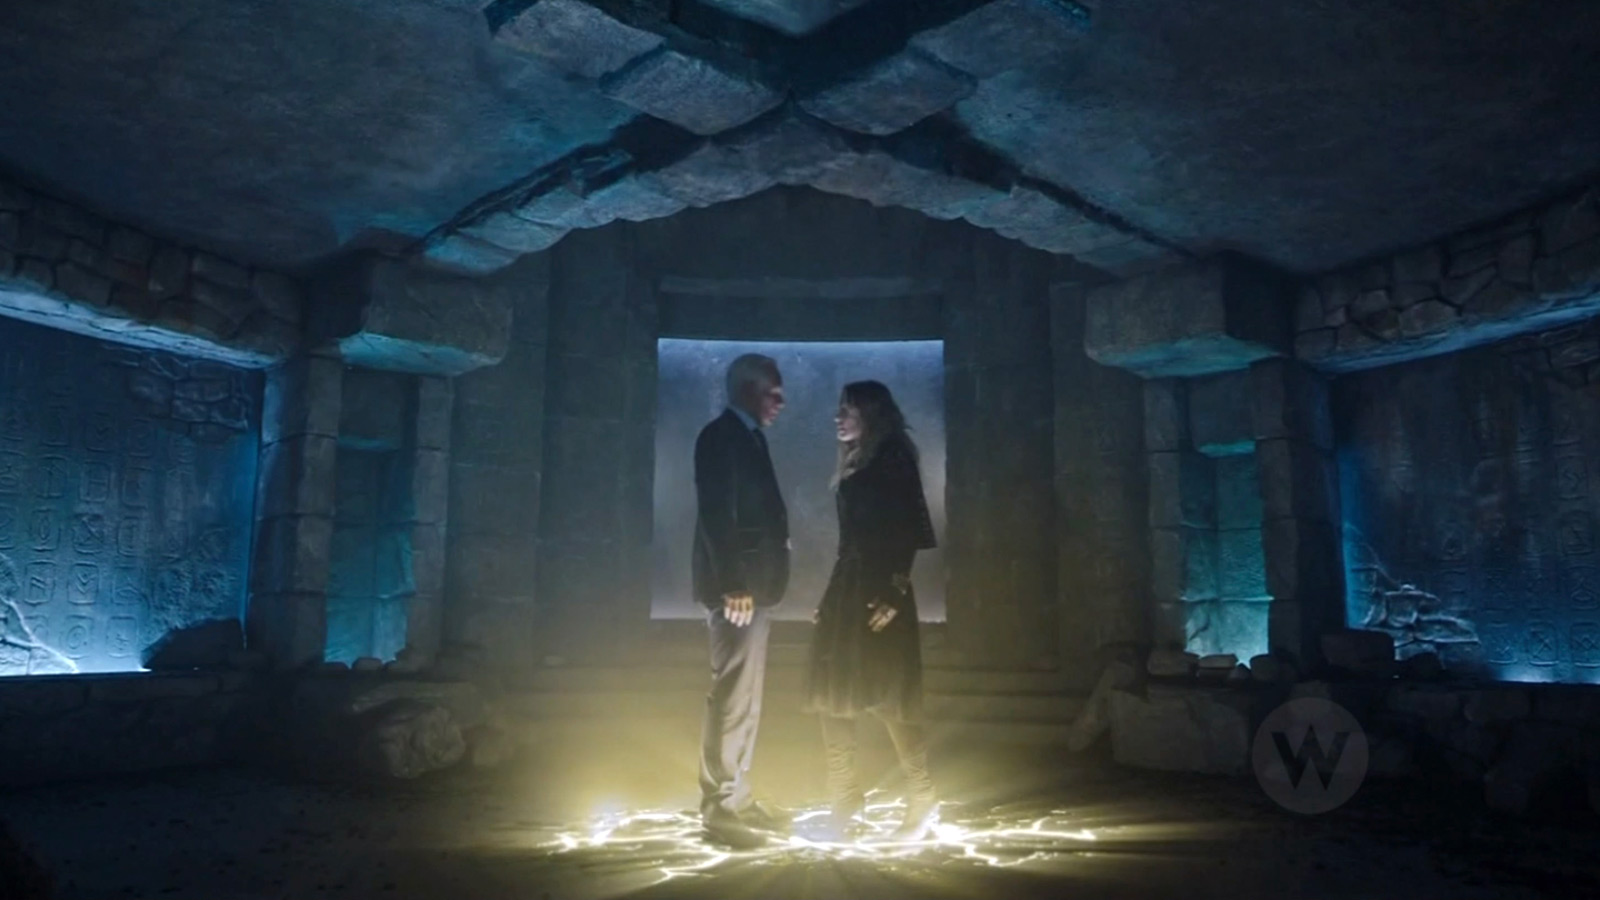 CHARMED: S1 - ANCIENT UNDERGROUND TEMPLE - SCREEN STILL